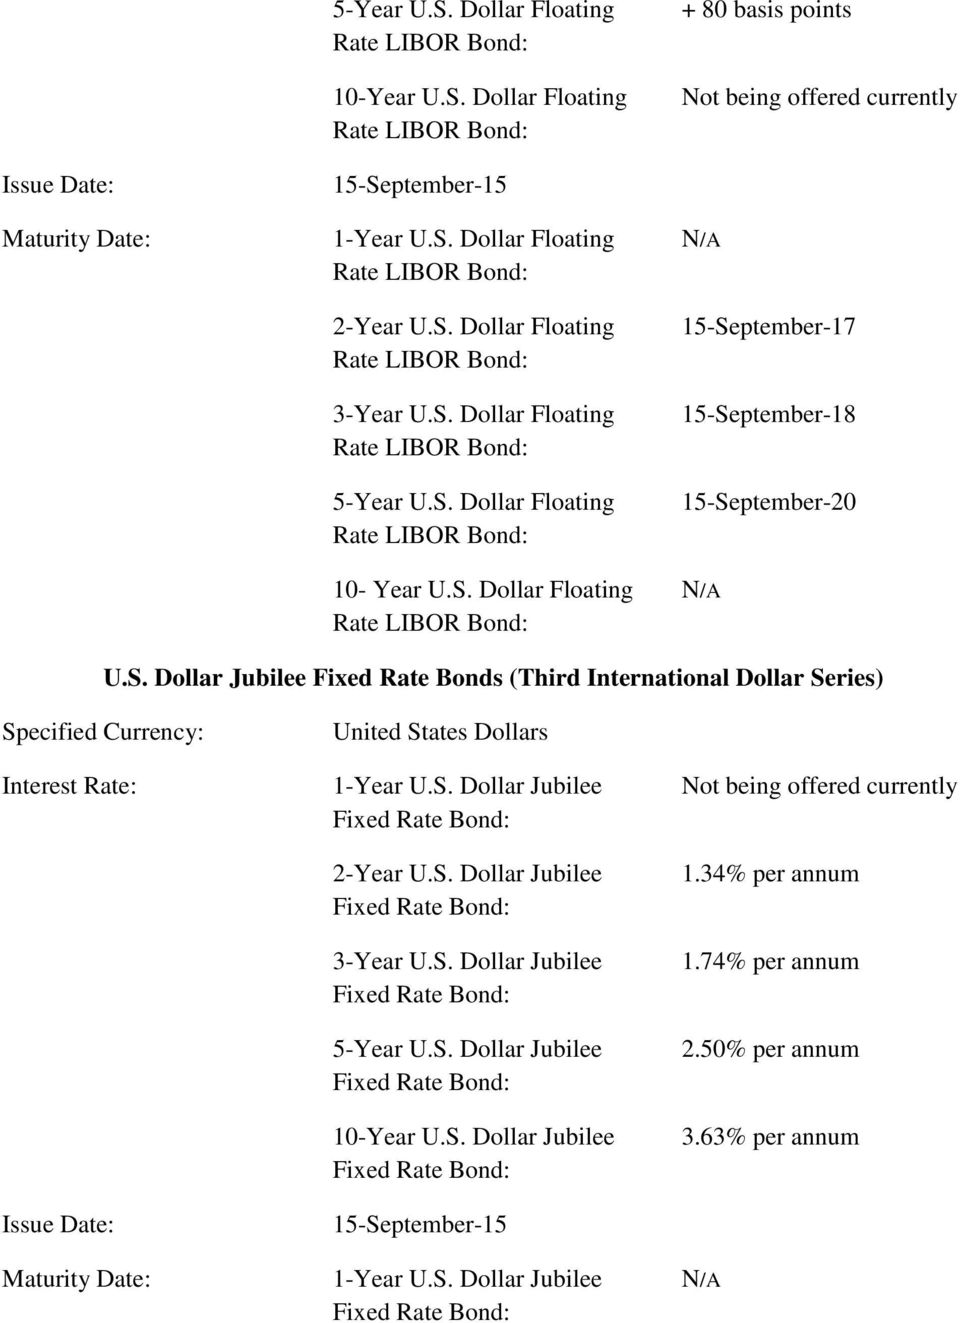 S. Dollar Jubilee Fixed Rate Bonds (Third International Dollar Series) Specified Currency: Interest Rate: Issue Date: Maturity Date: United States Dollars 1-Year U.S. Dollar Jubilee Fixed Rate Bond: 2-Year U.